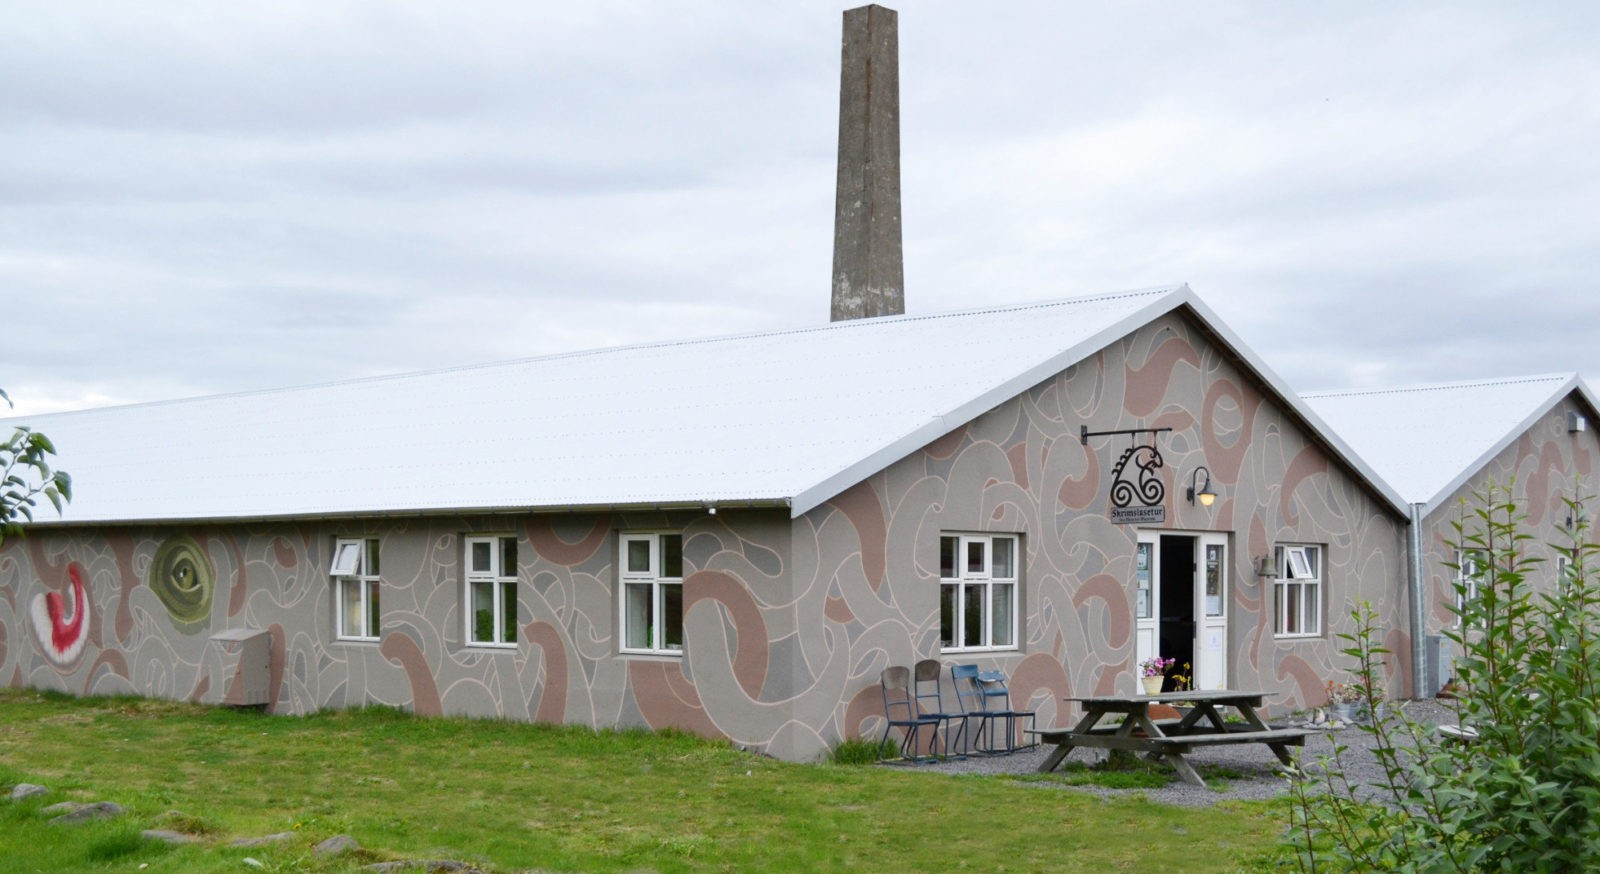 The decorated Monster museum in the village of Bíldudalur.